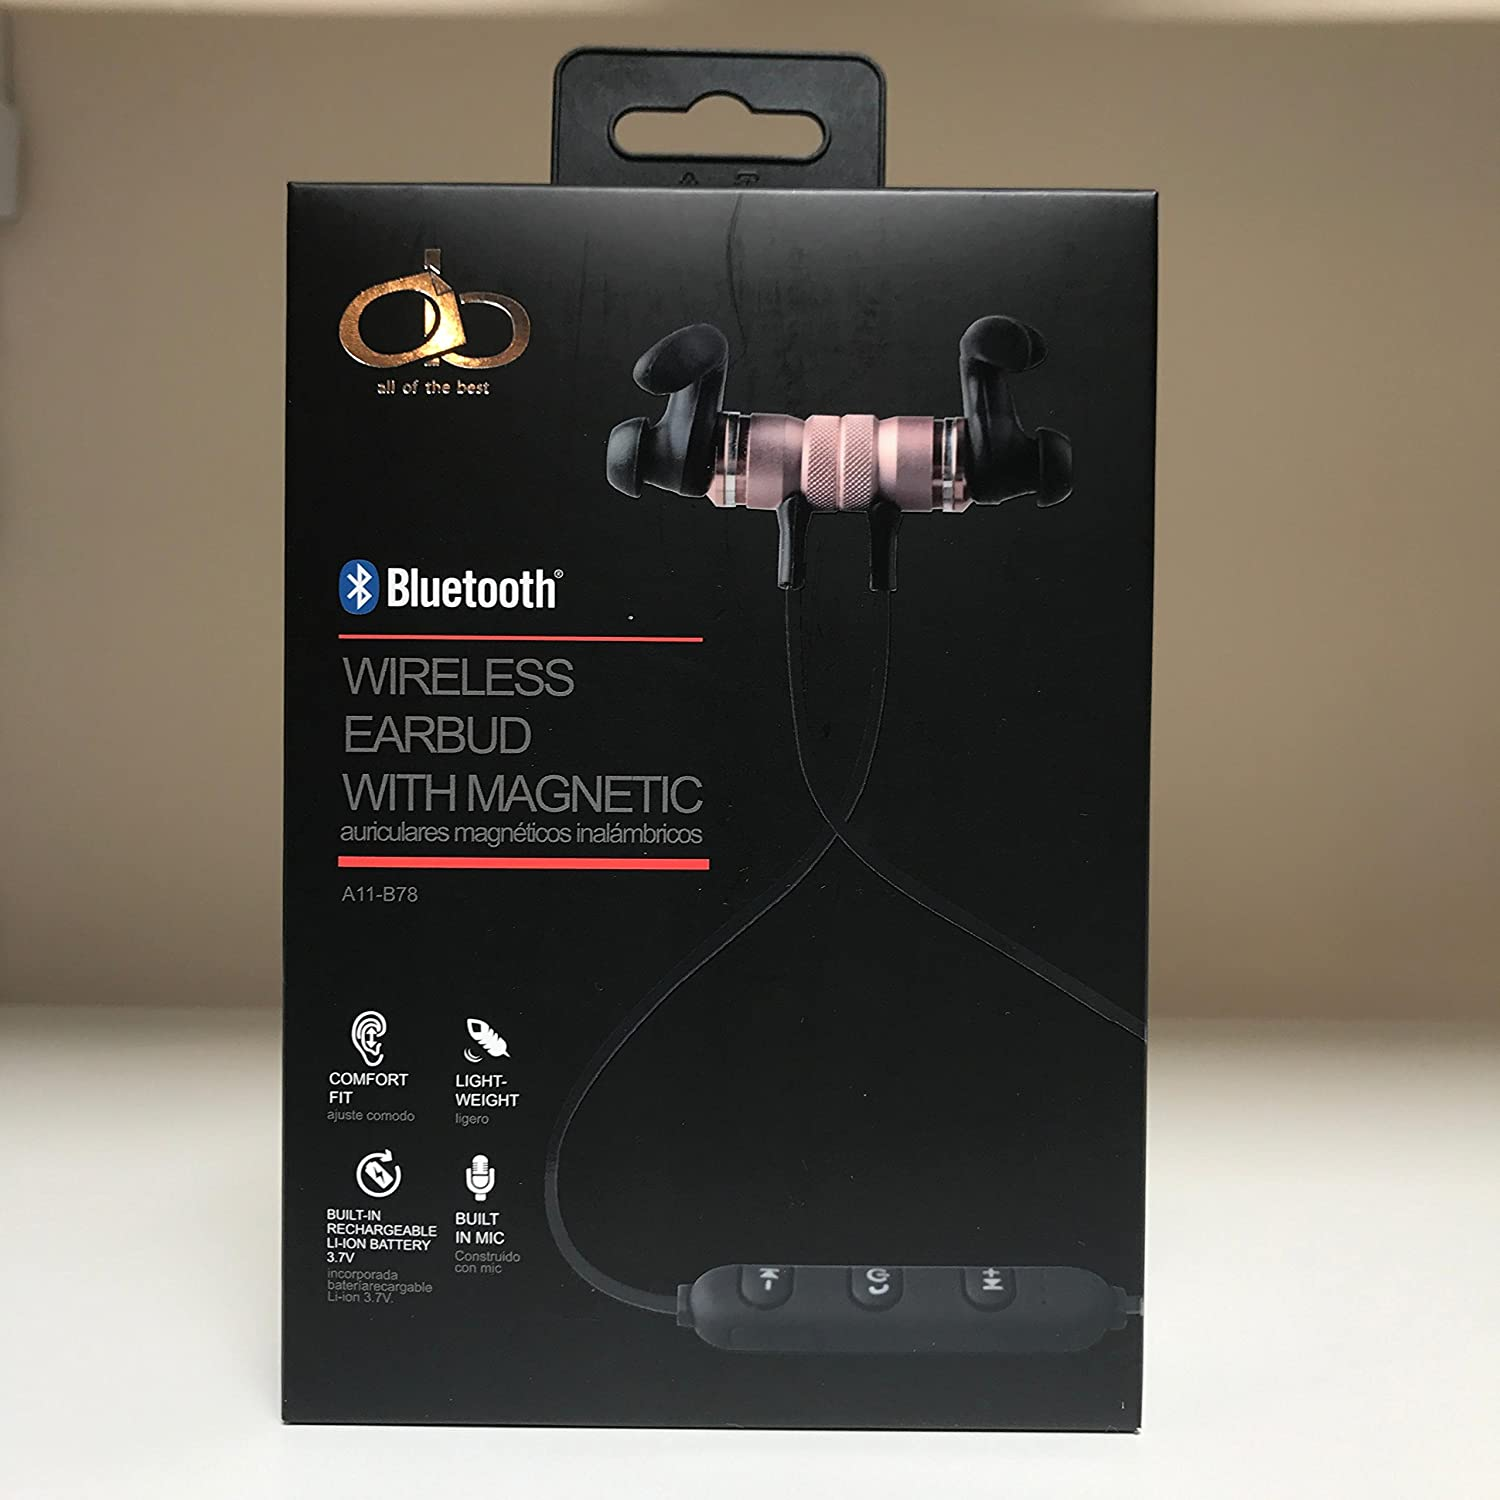 Amazon.com: all of the best - Wireless Earbud with Magnetic - Bluetooth: Electronics